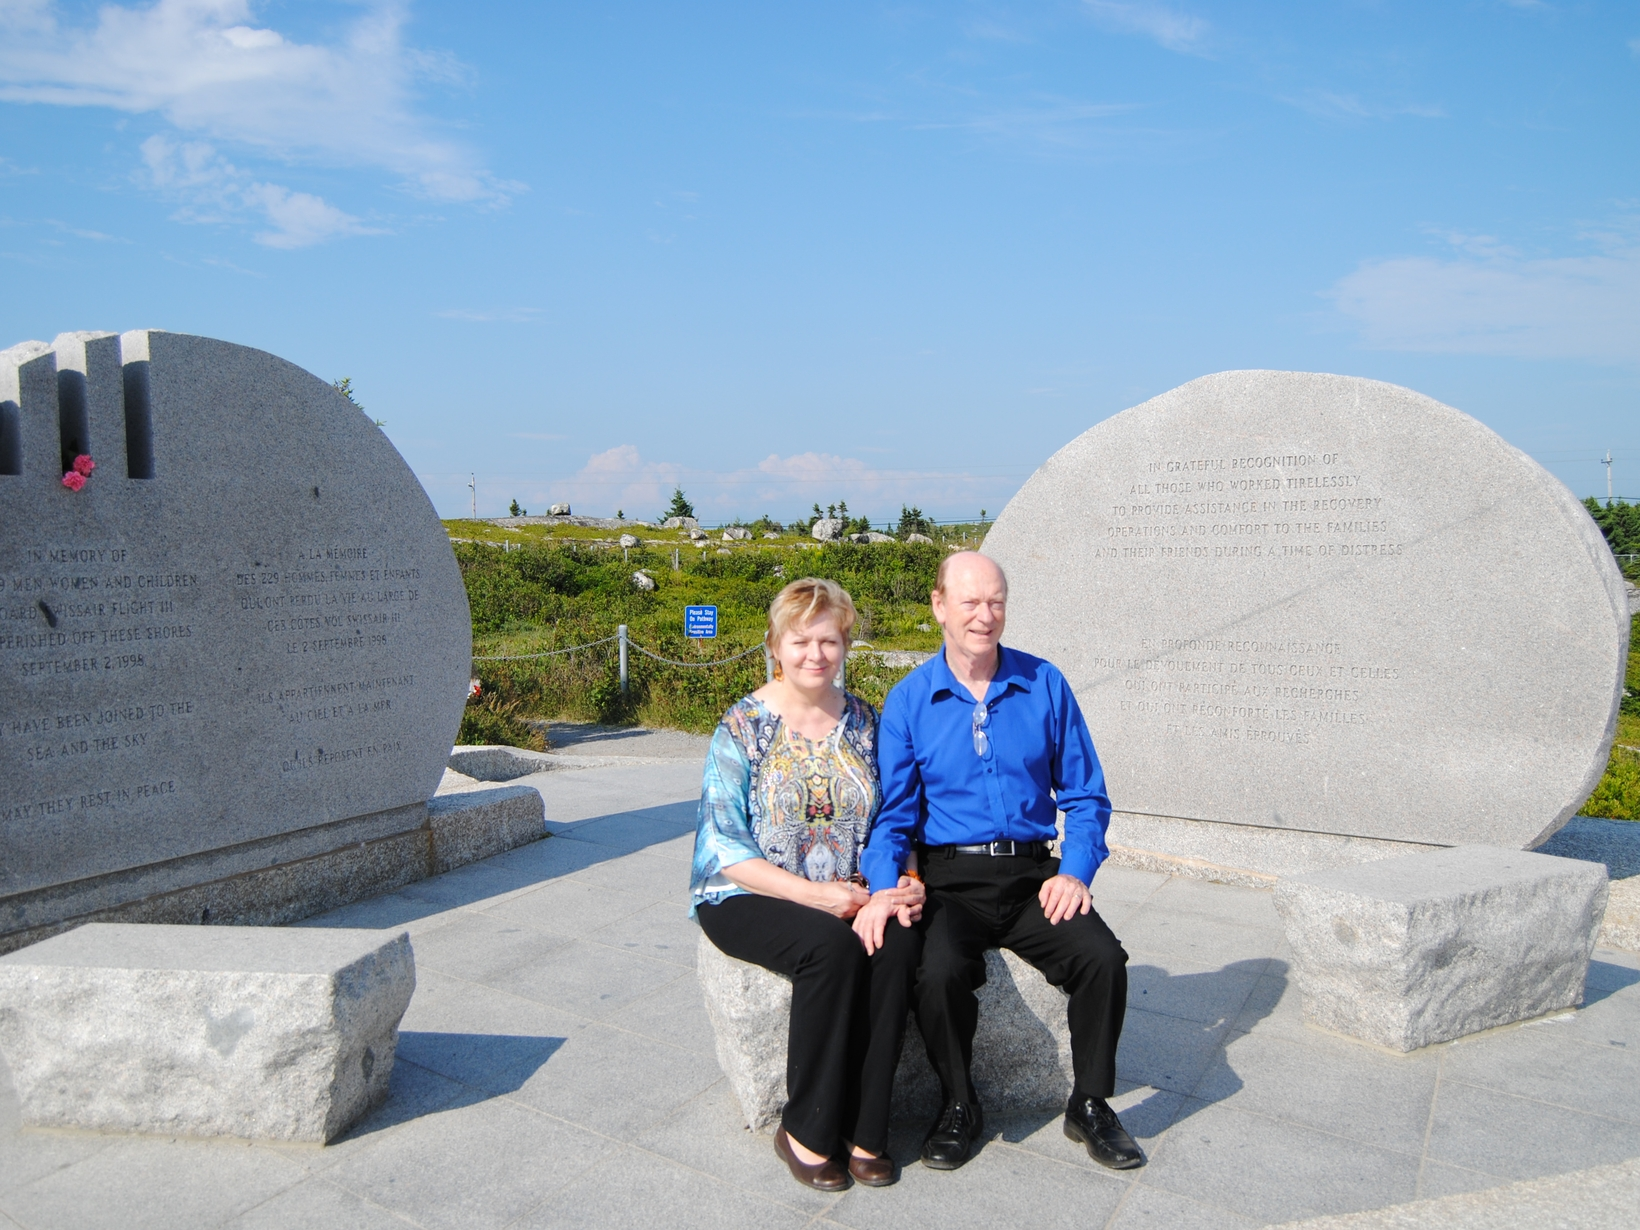 Barbara & Dwight from Gagetown, New Brunswick, Canada